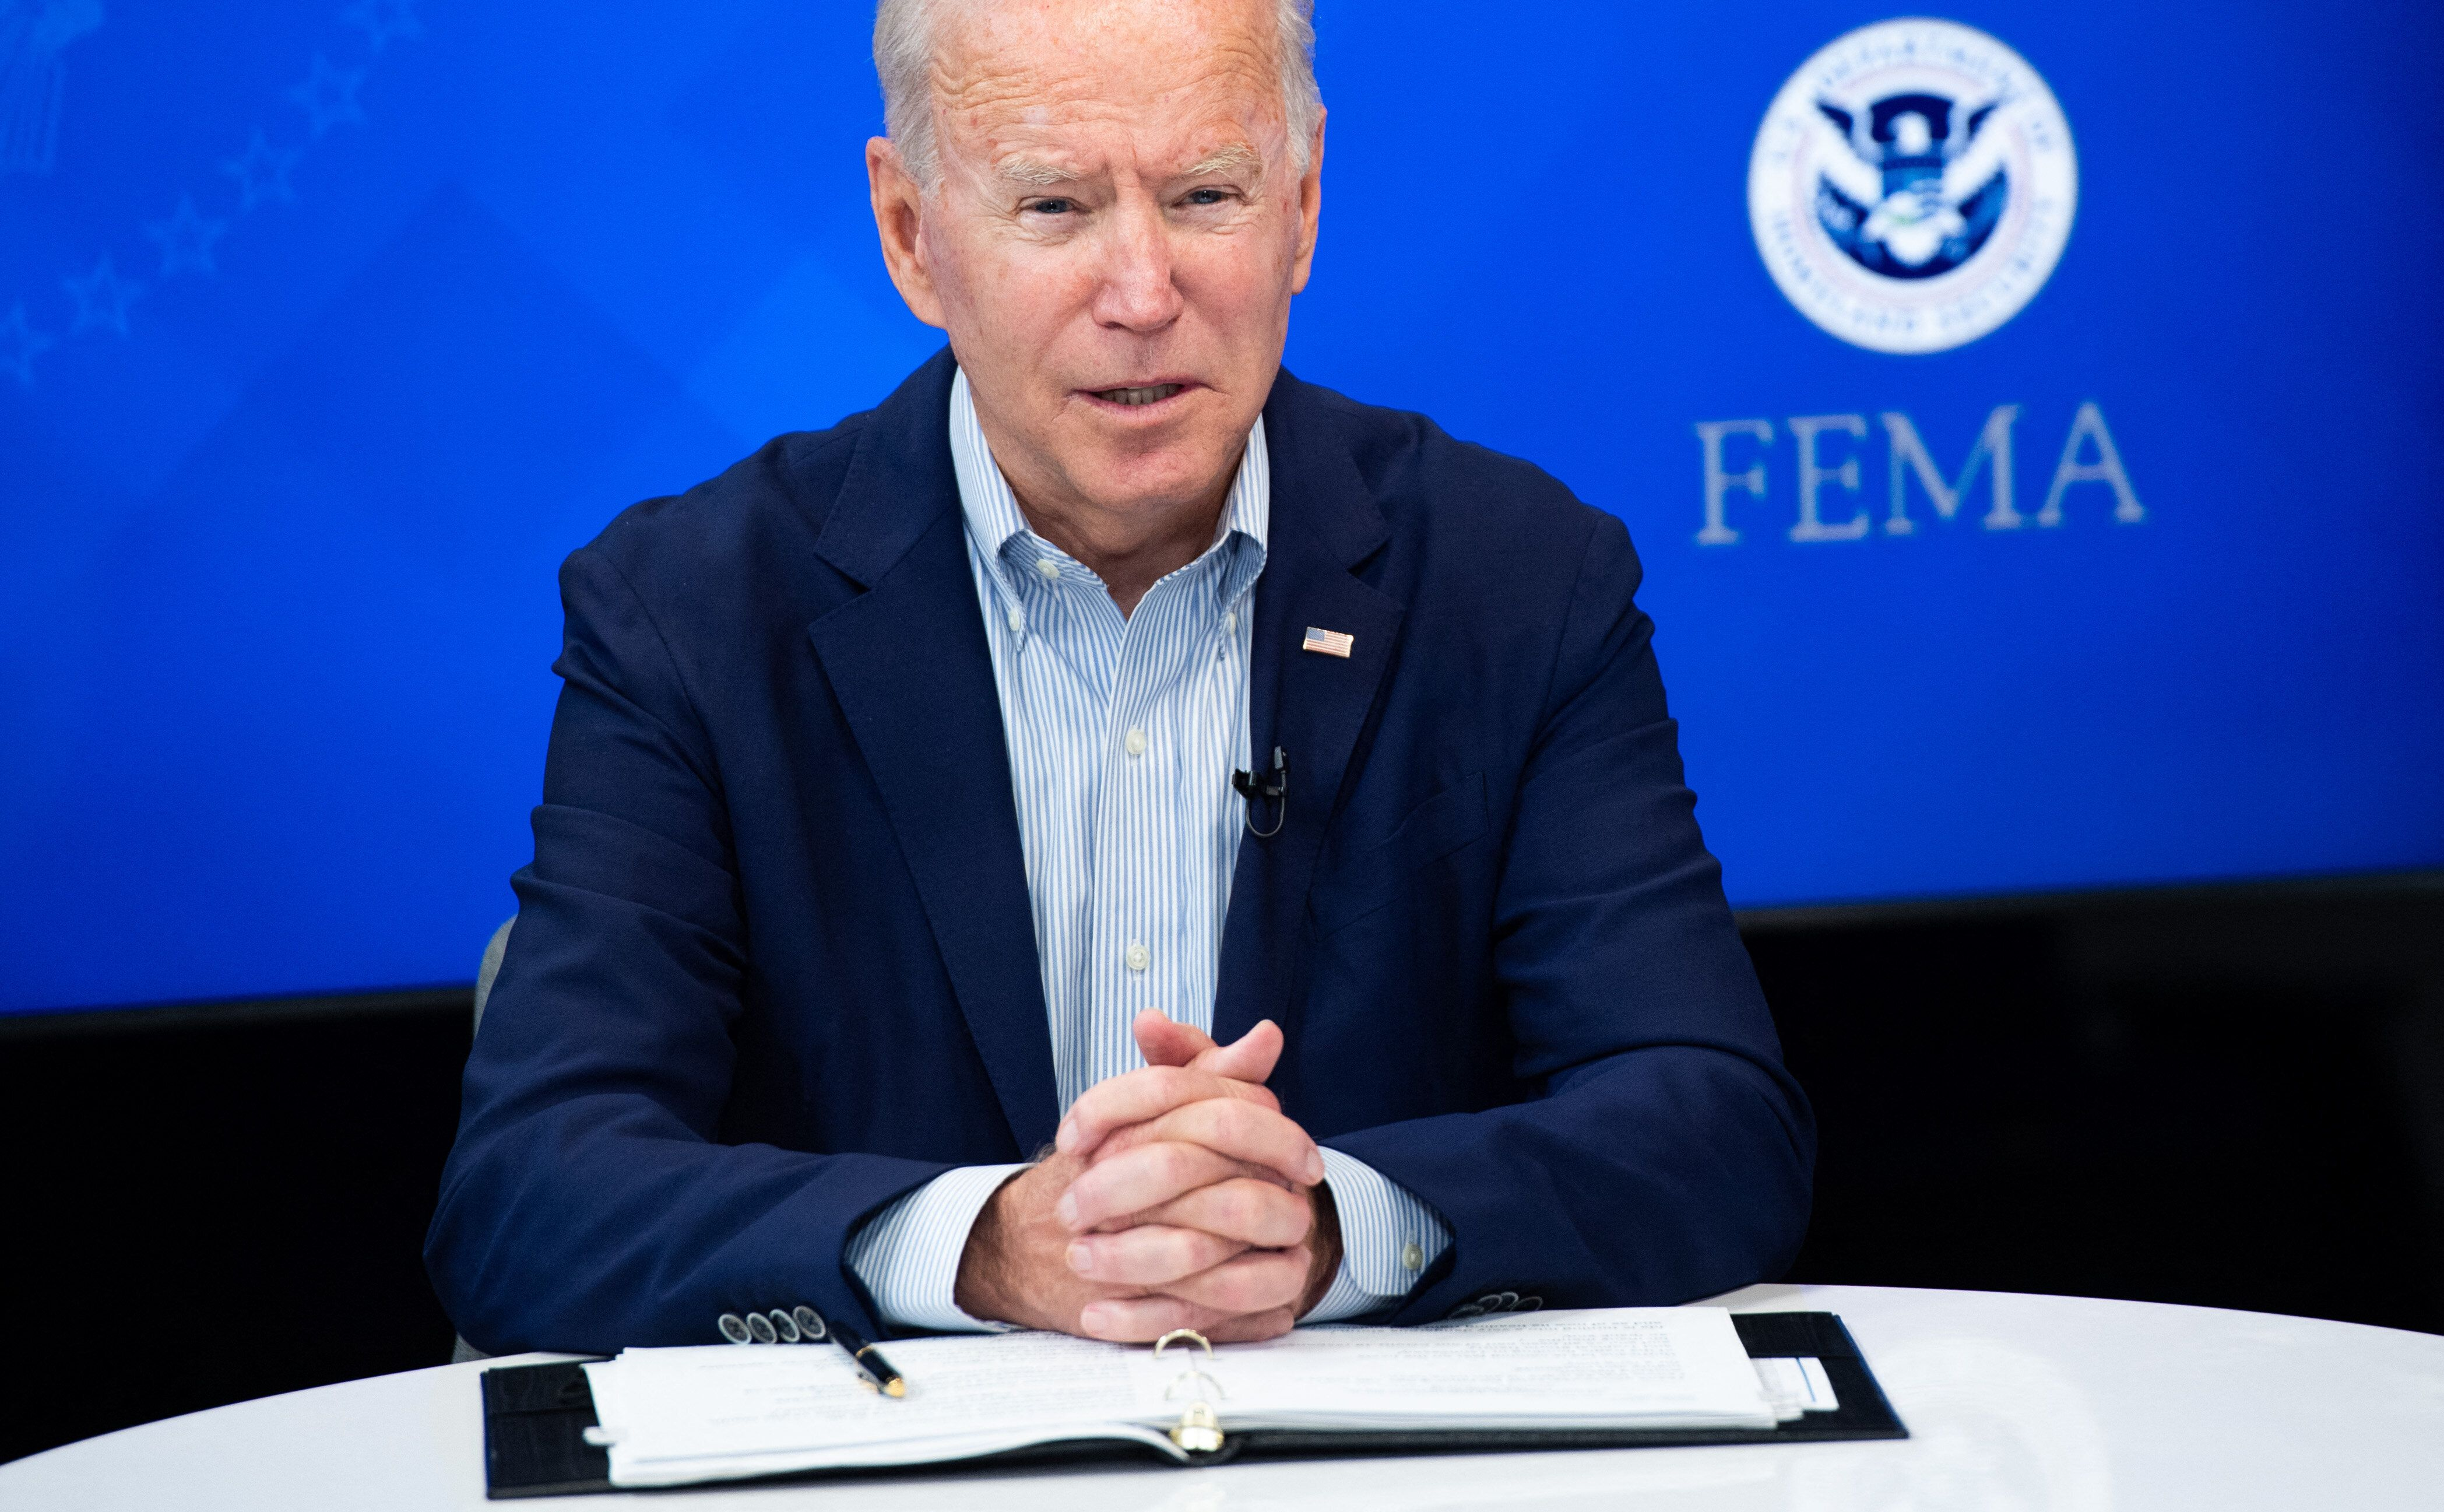 US President Joe Biden speaks during a virtual briefing by Federal Emergency Management Agency officials on preparations for